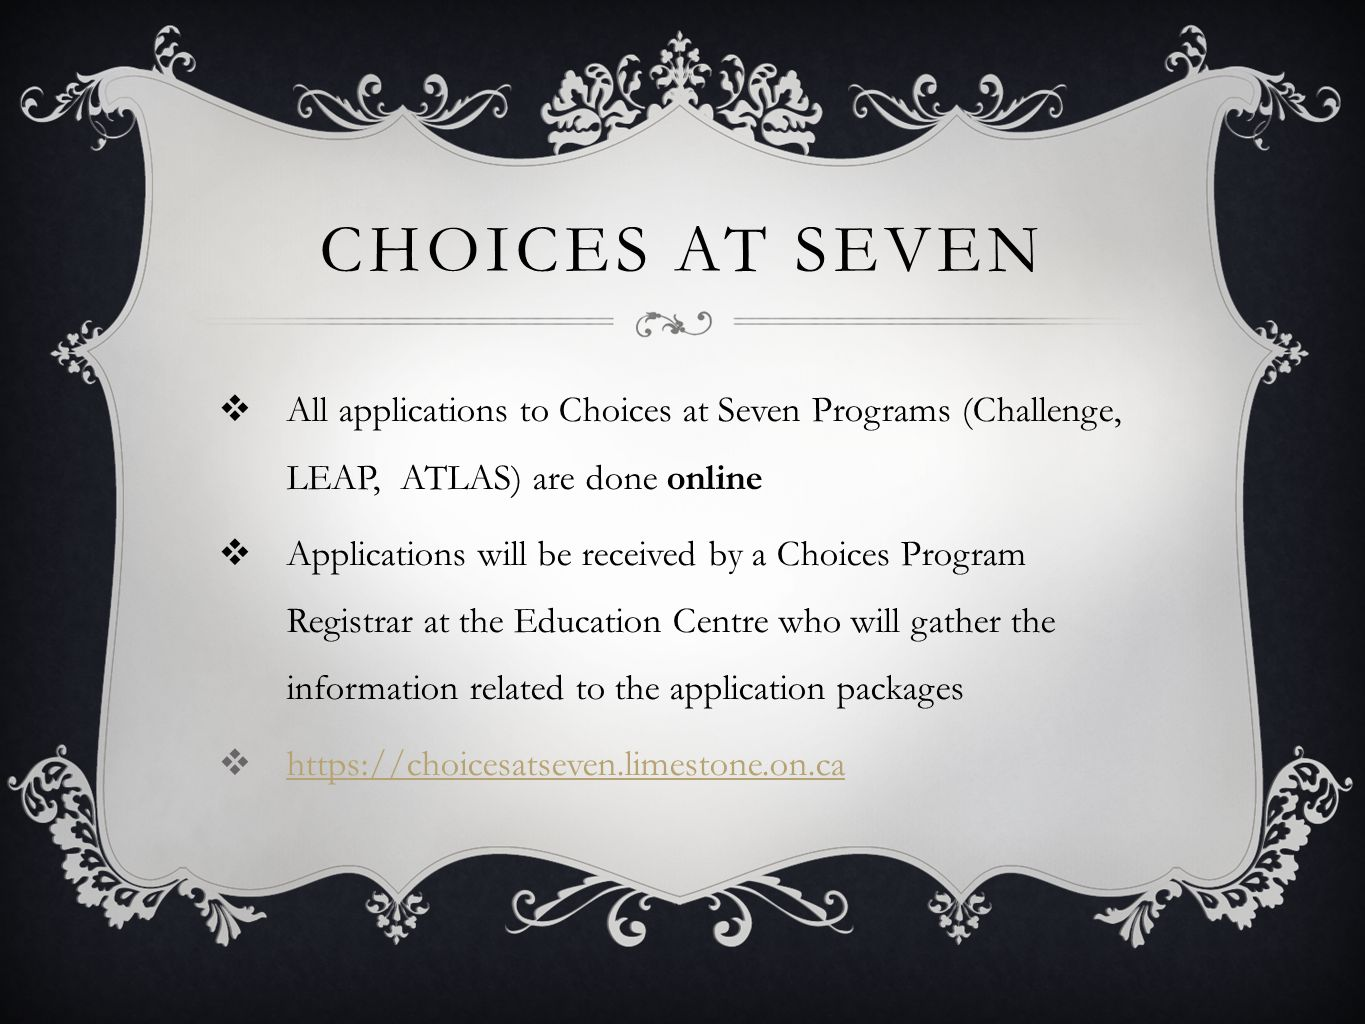 Choices at seven All applications to Choices at Seven Programs (Challenge, LEAP, ATLAS) are done online.